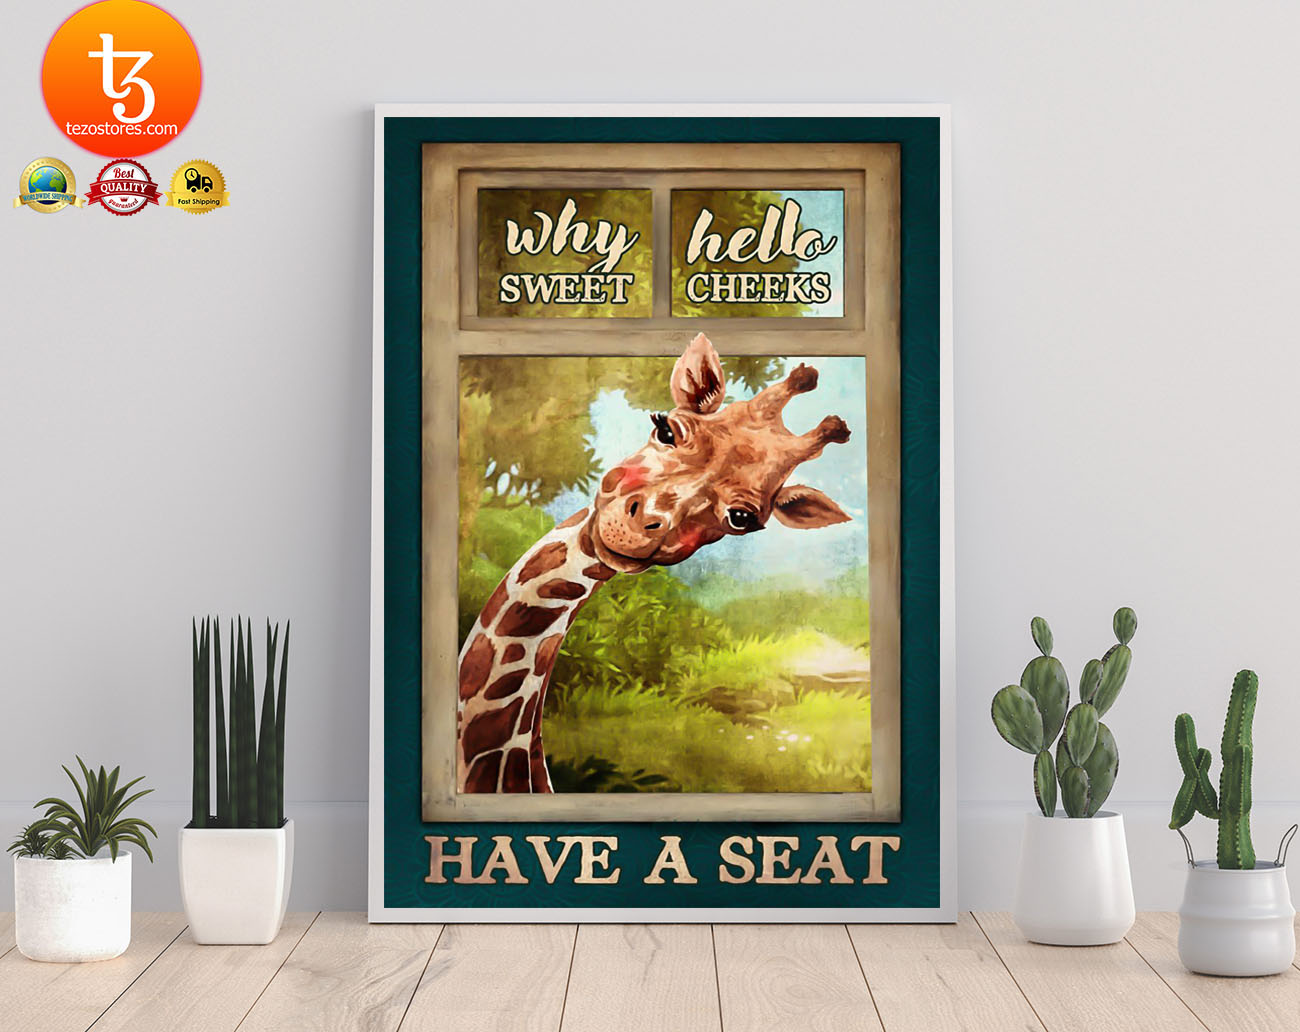 Giraffe why hello sweet cheeks have a seat poster 19